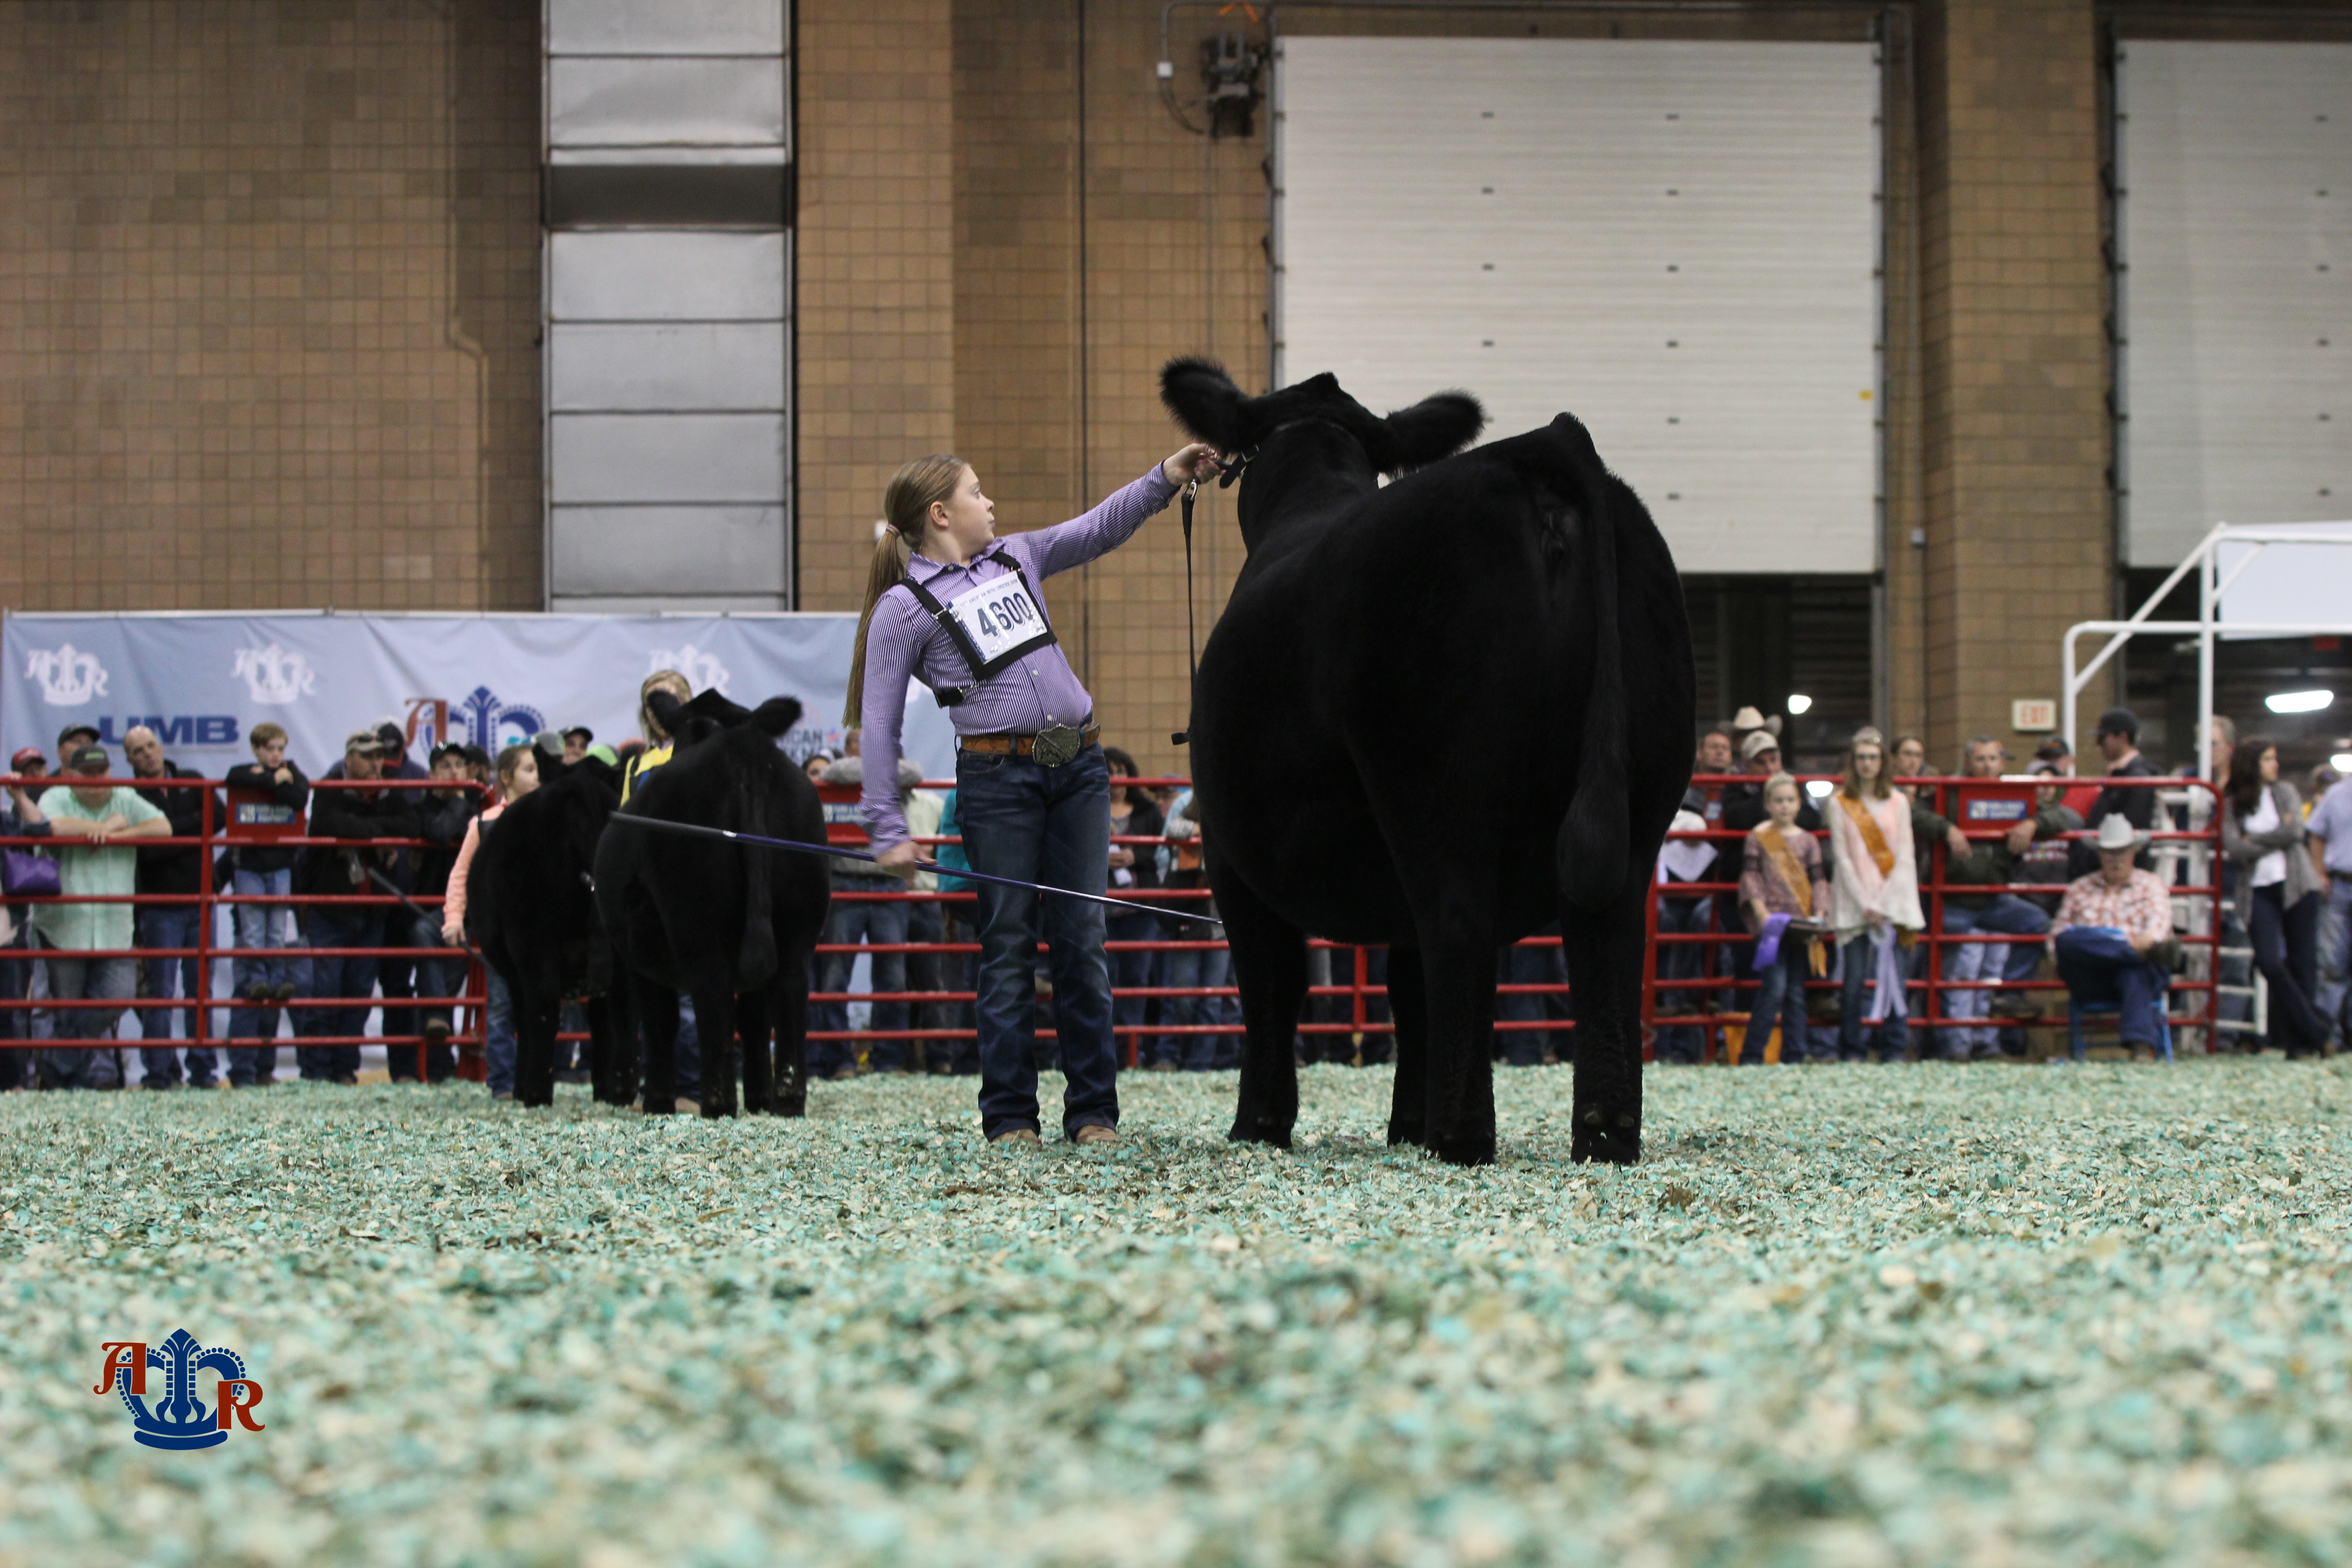 Simmentals kick-off the morning strong